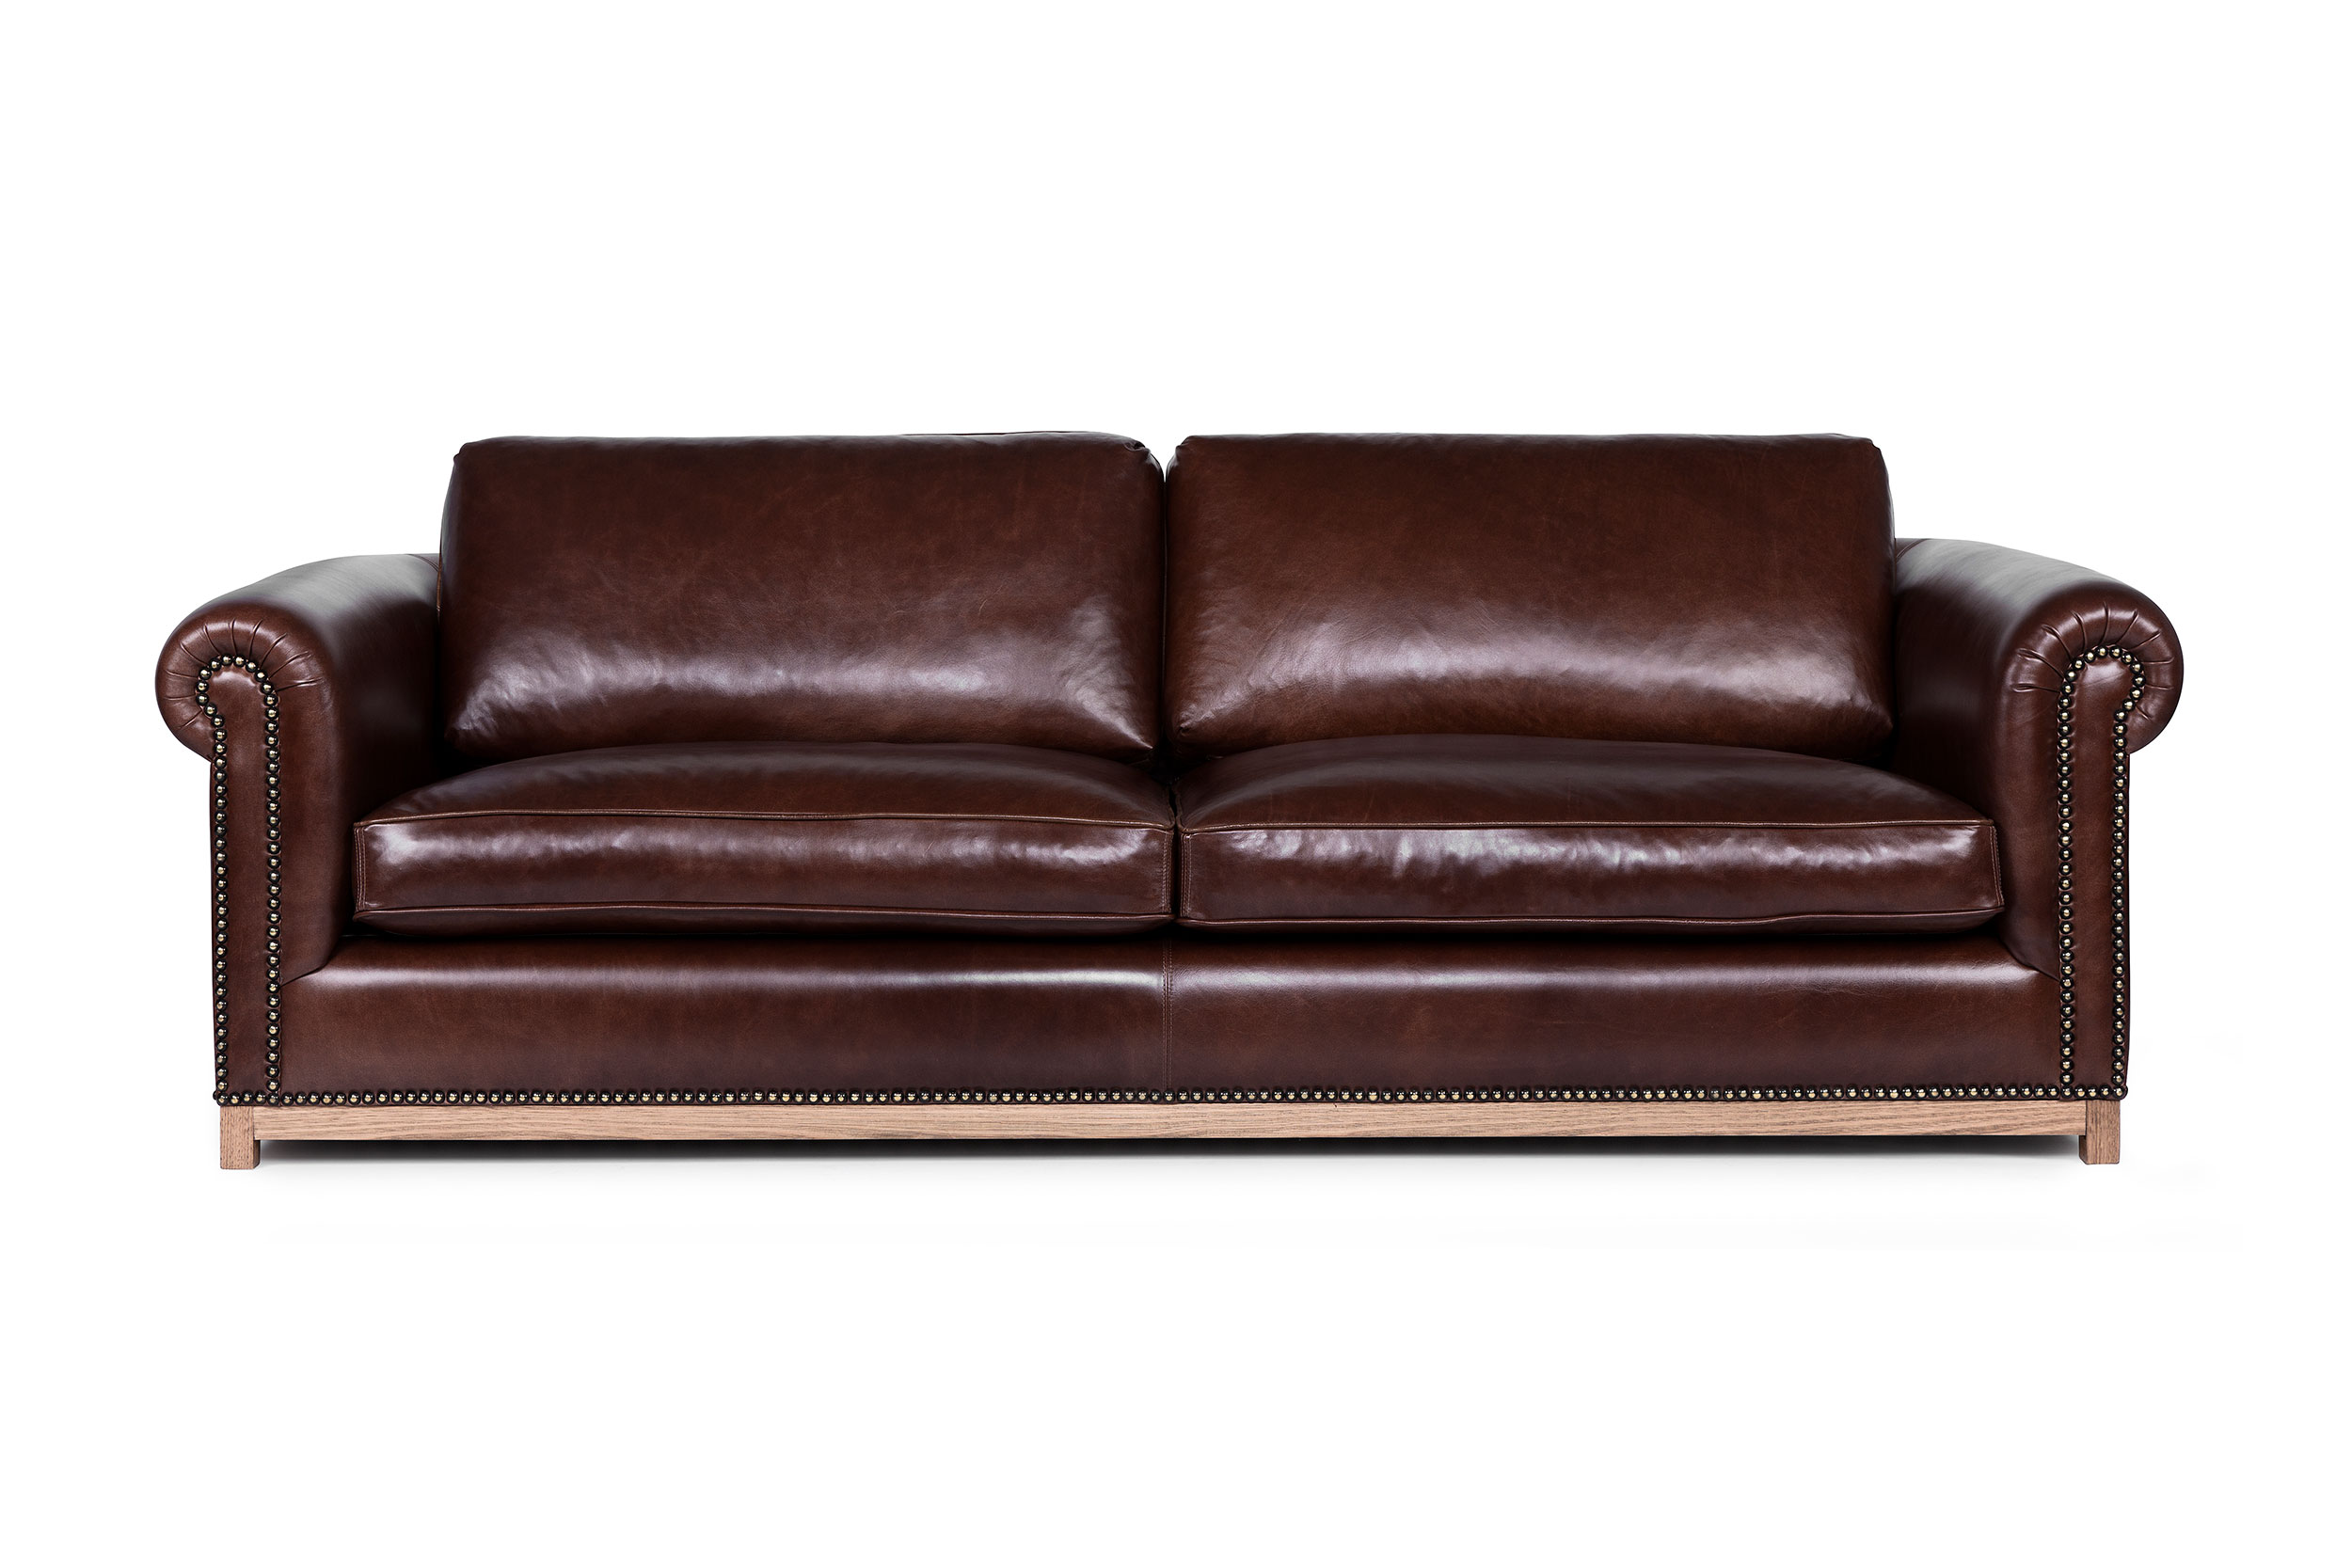 Arthur G's Barrington Sofa